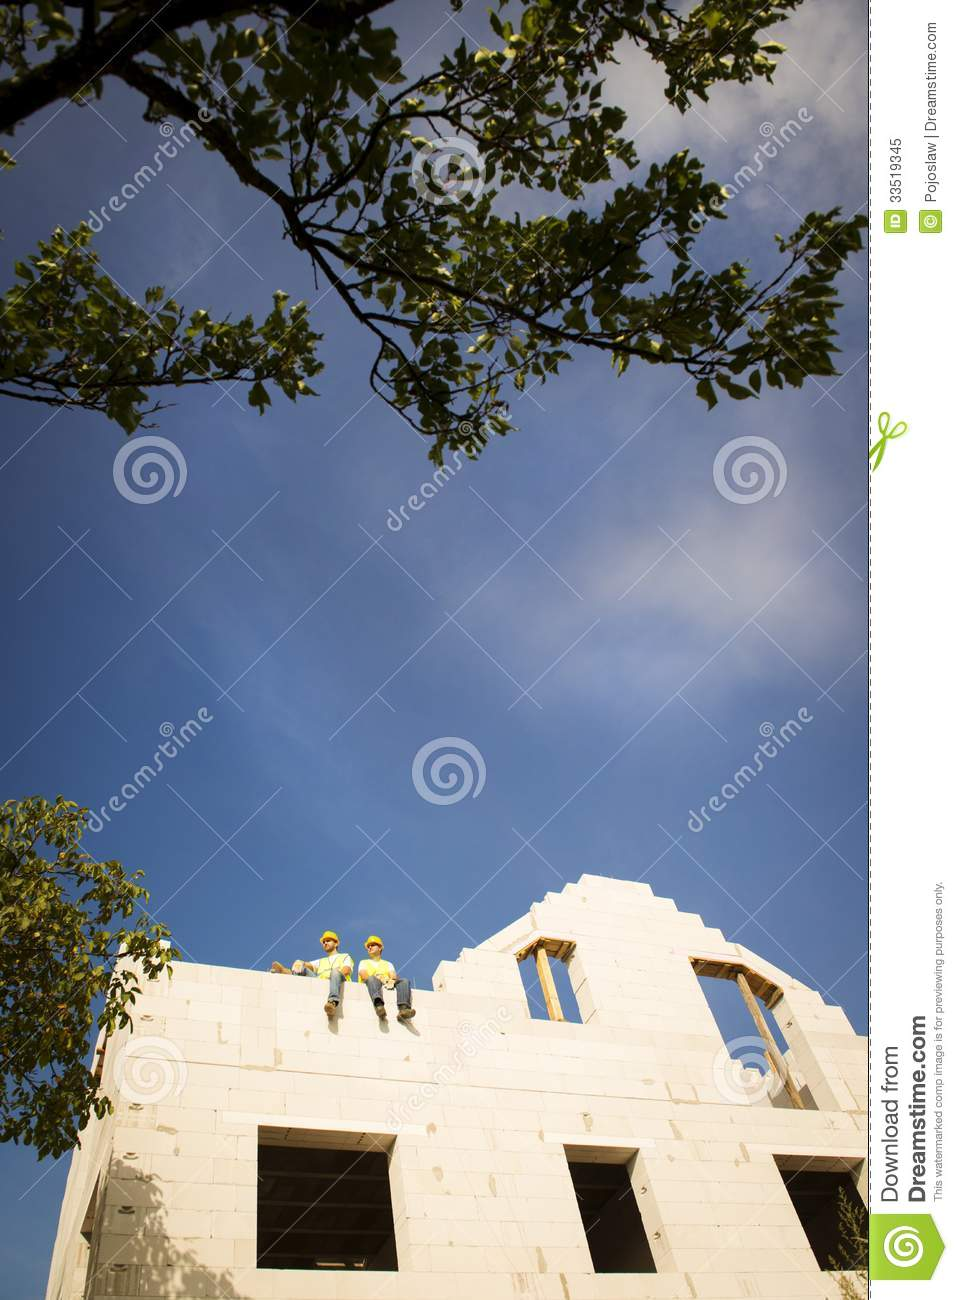 House Construction Royalty Free Stock Photo Image 33519345